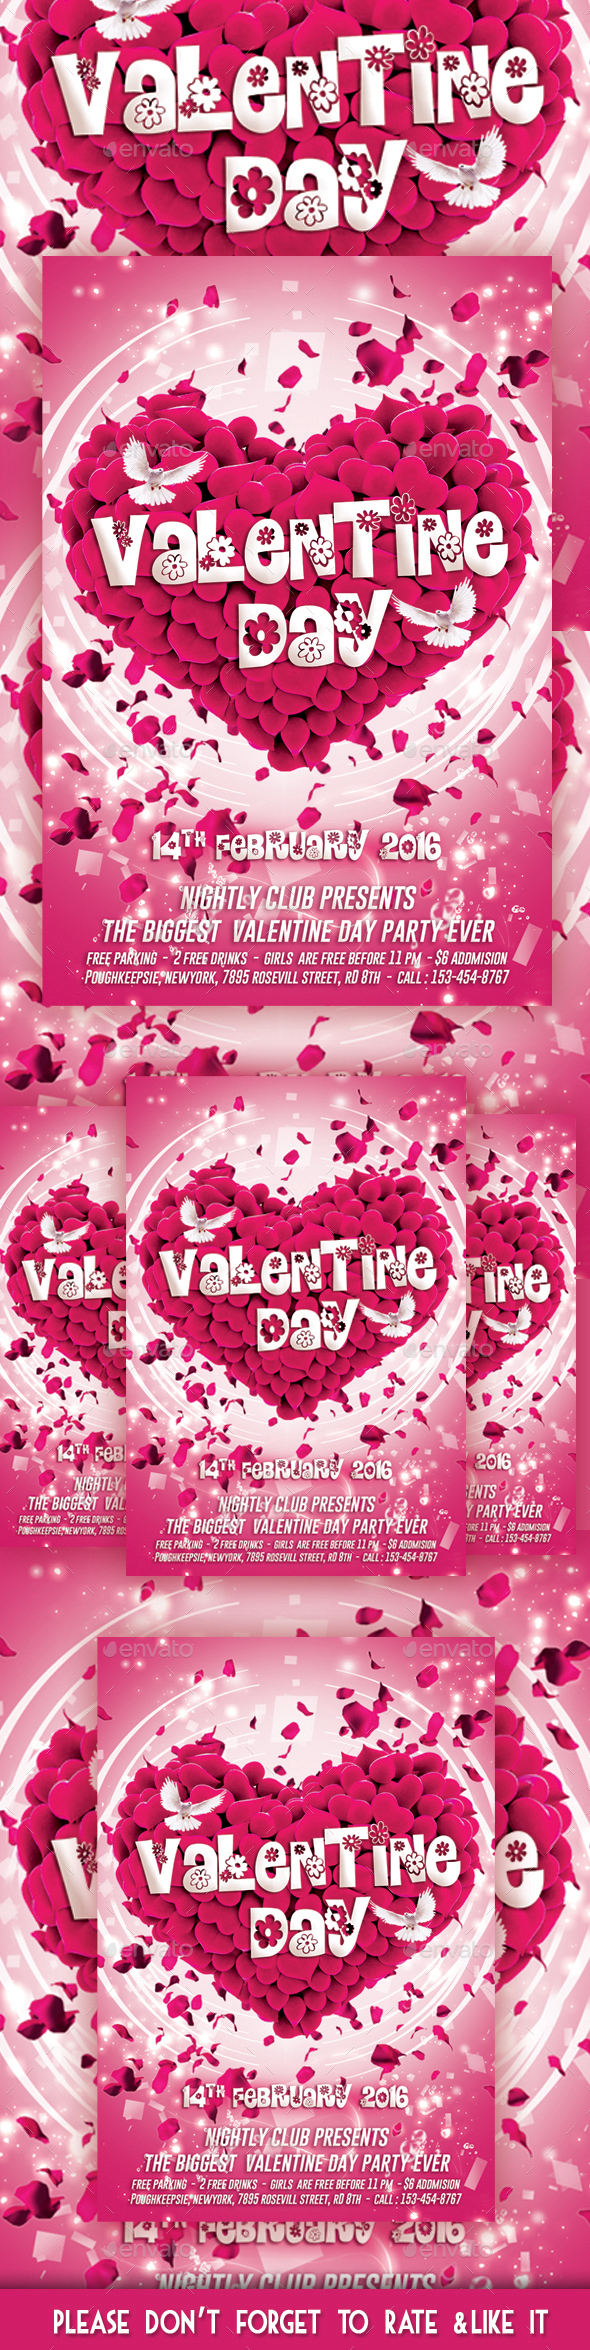 Valentine Day Party Flyer - Flyers Print Templates